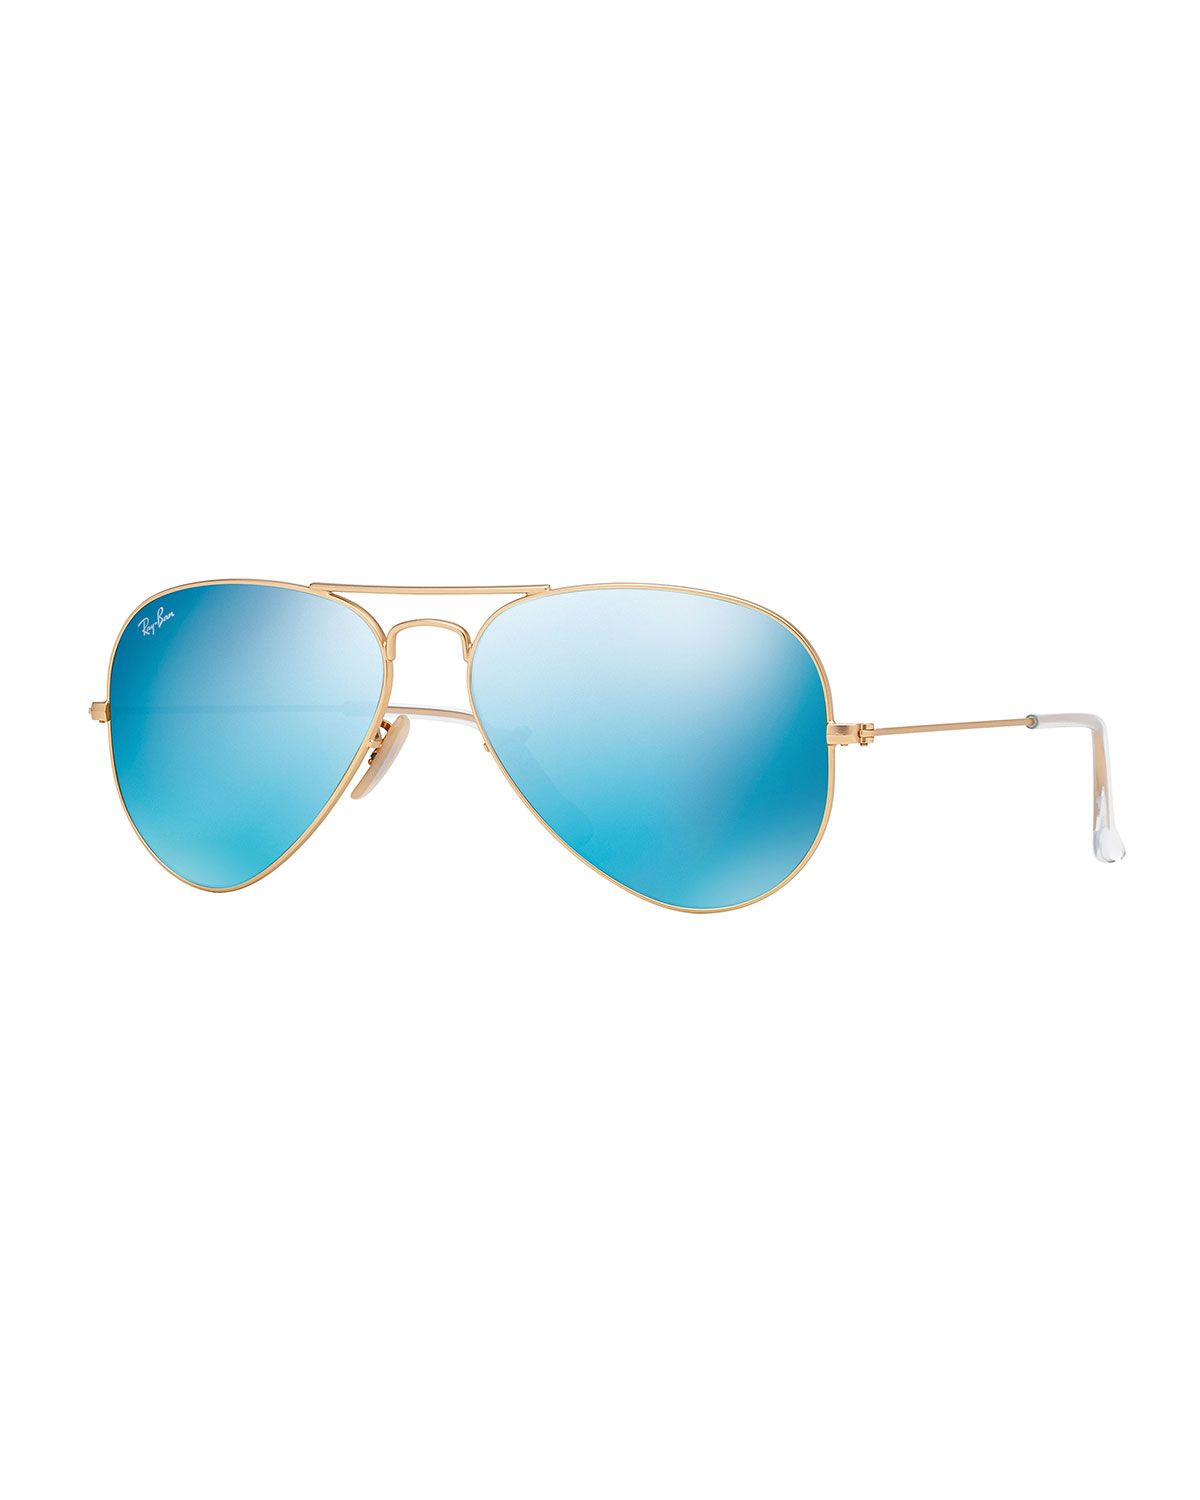 golden aviators  Mirrored Aviator Sunglasses, Golden/Blue, Size: 62MM, Gold/Blue ...